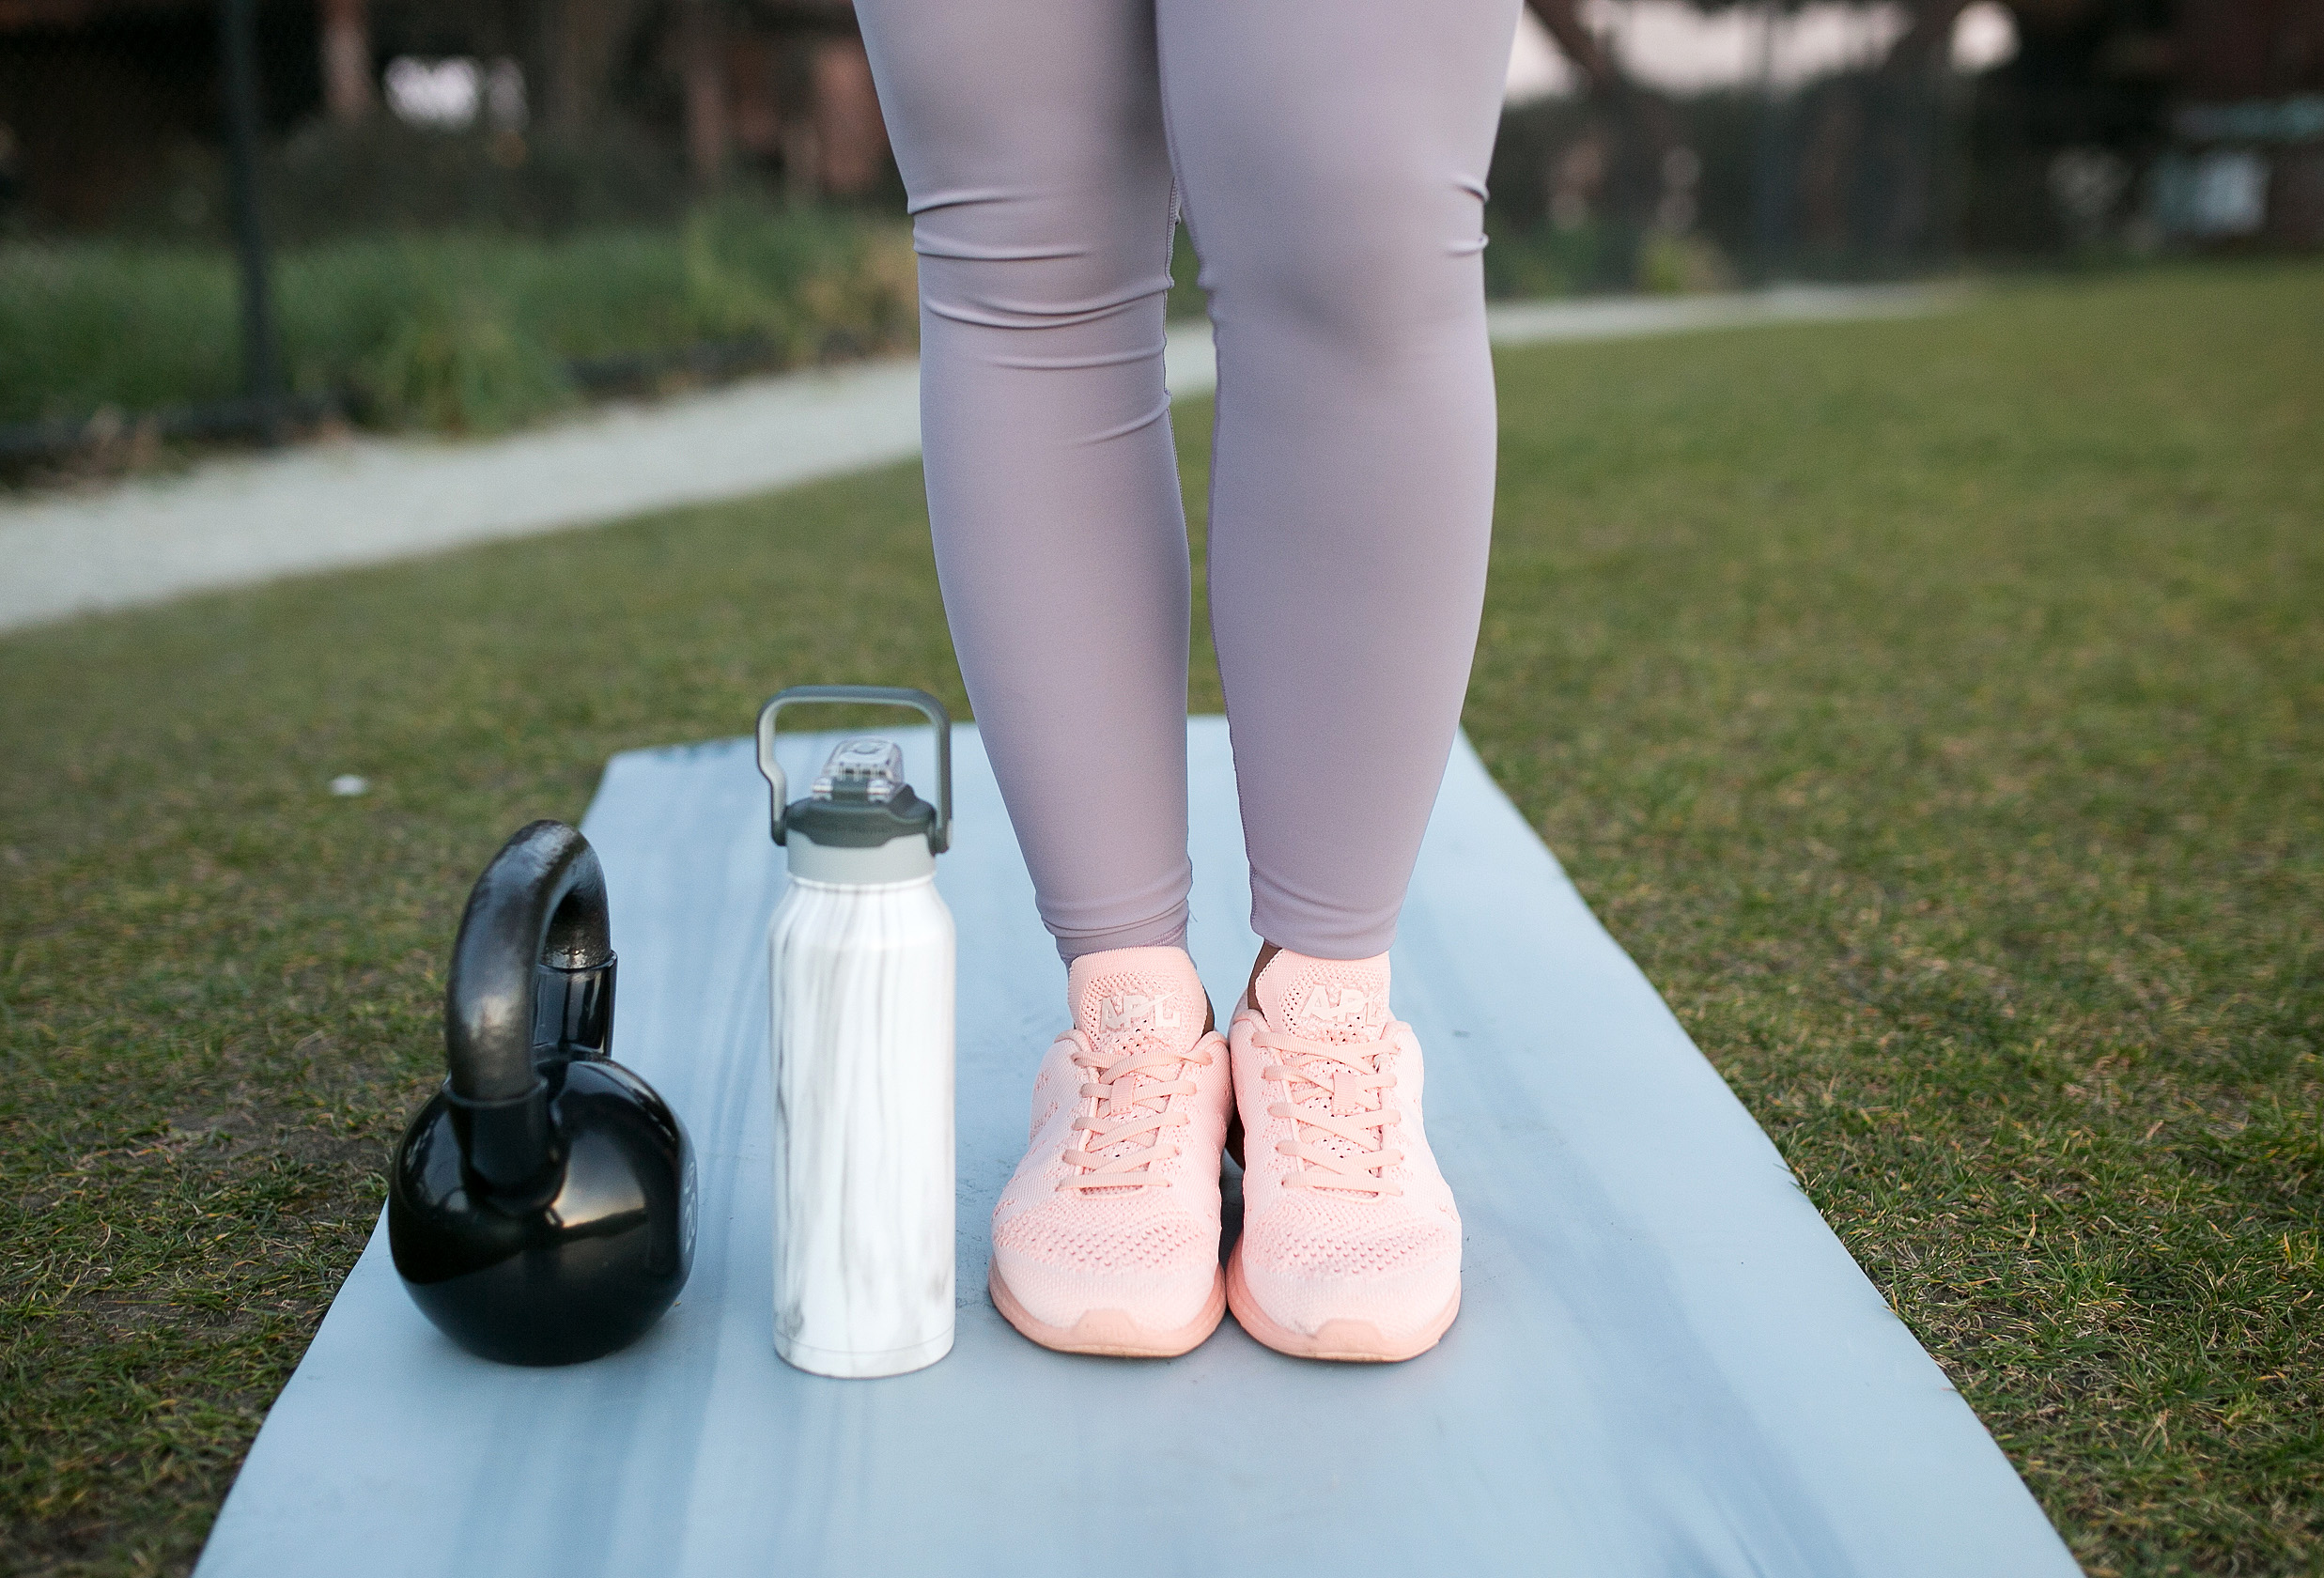 Want to get into morning workouts, but can't seem to get into a good groove? Check out these 5 tips to help you crush your morning workouts.